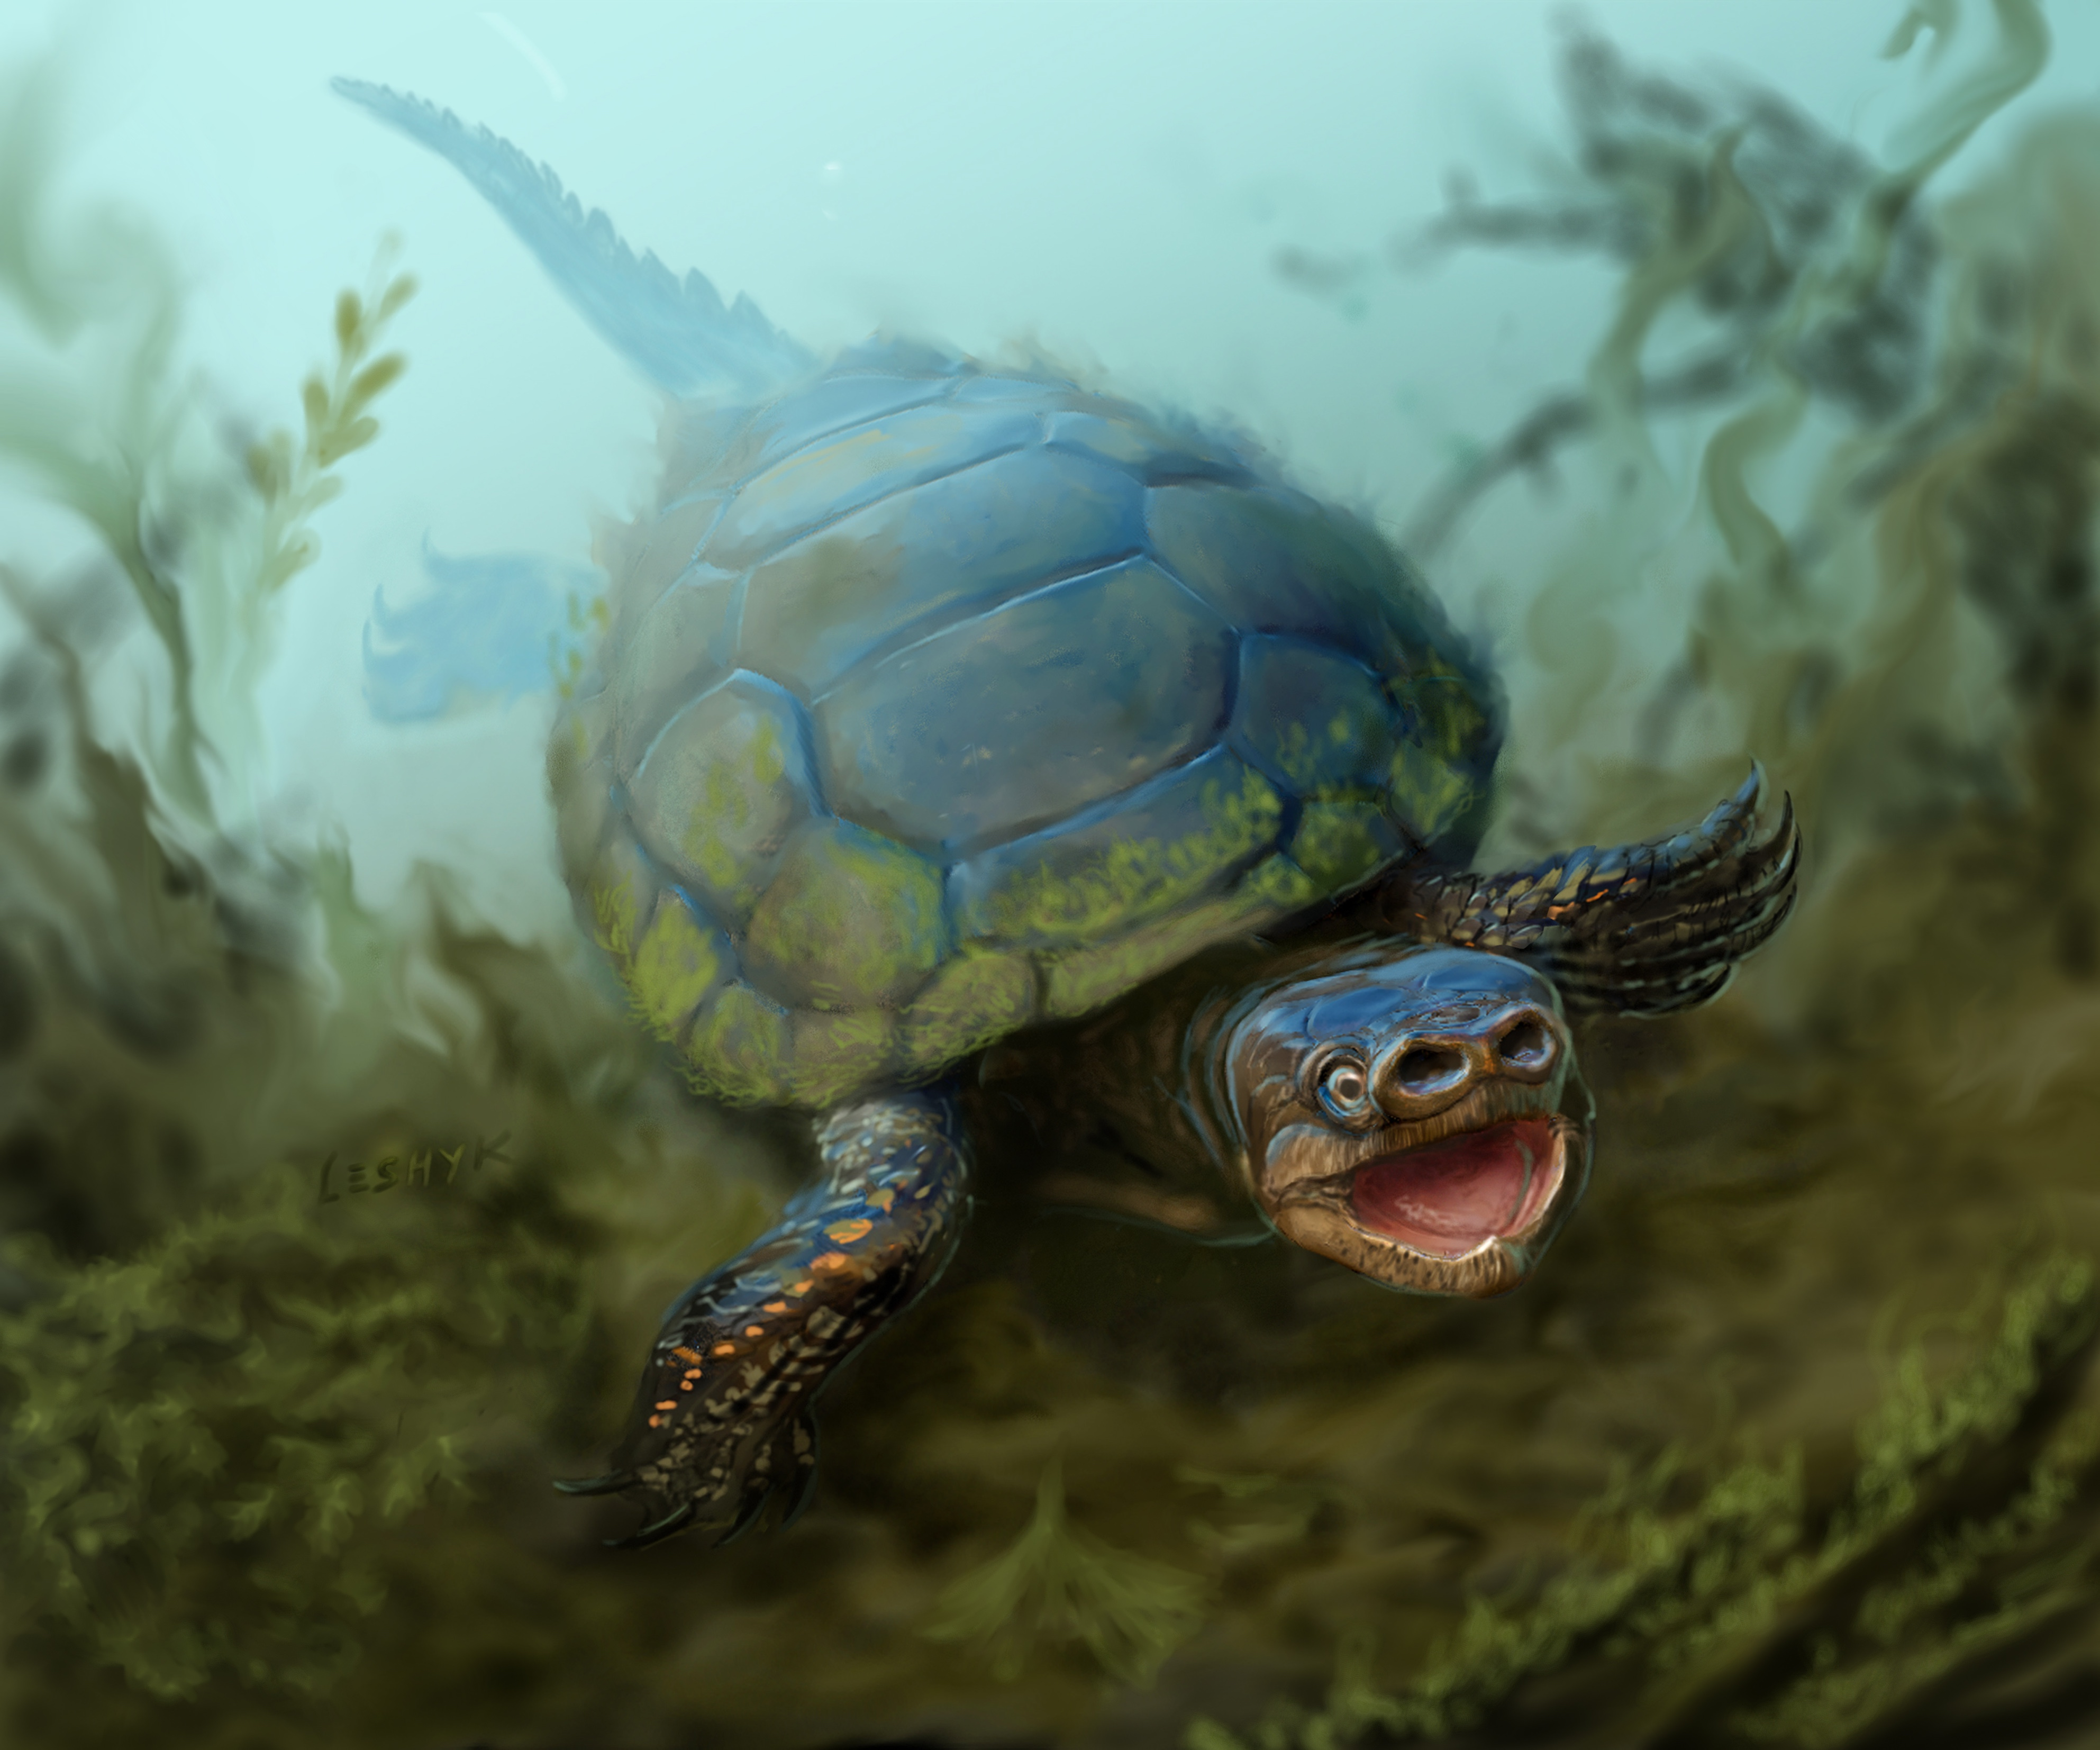 76 million year old extinct species of pig snouted turtle